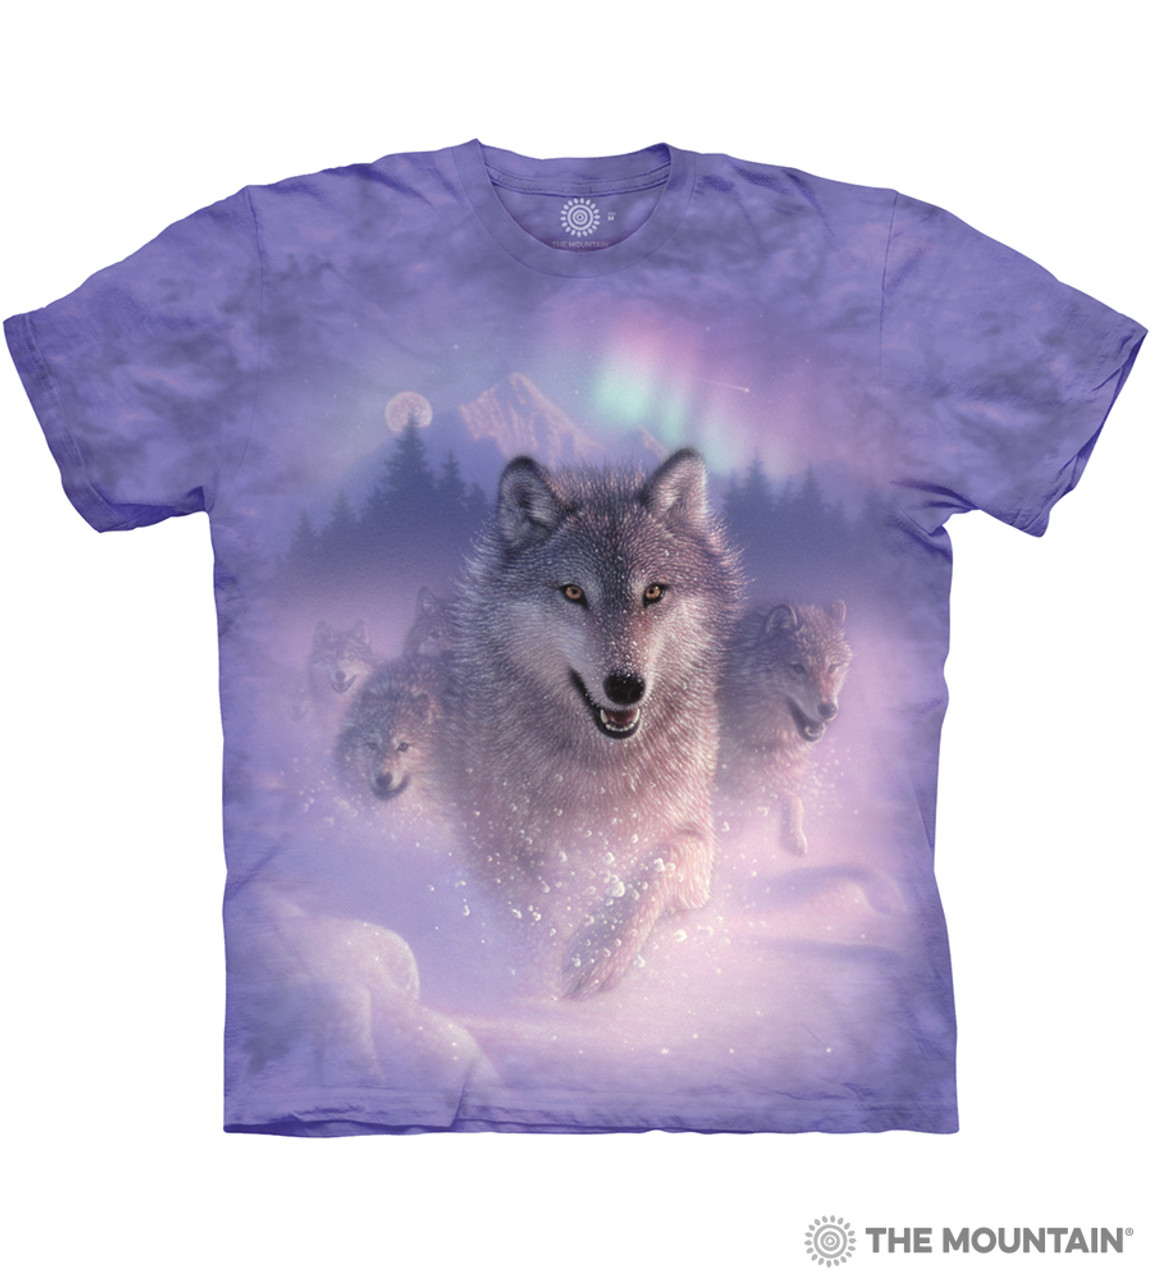 501310a94a5f Northern Lights - The Mountain Adult Unisex T-Shirt